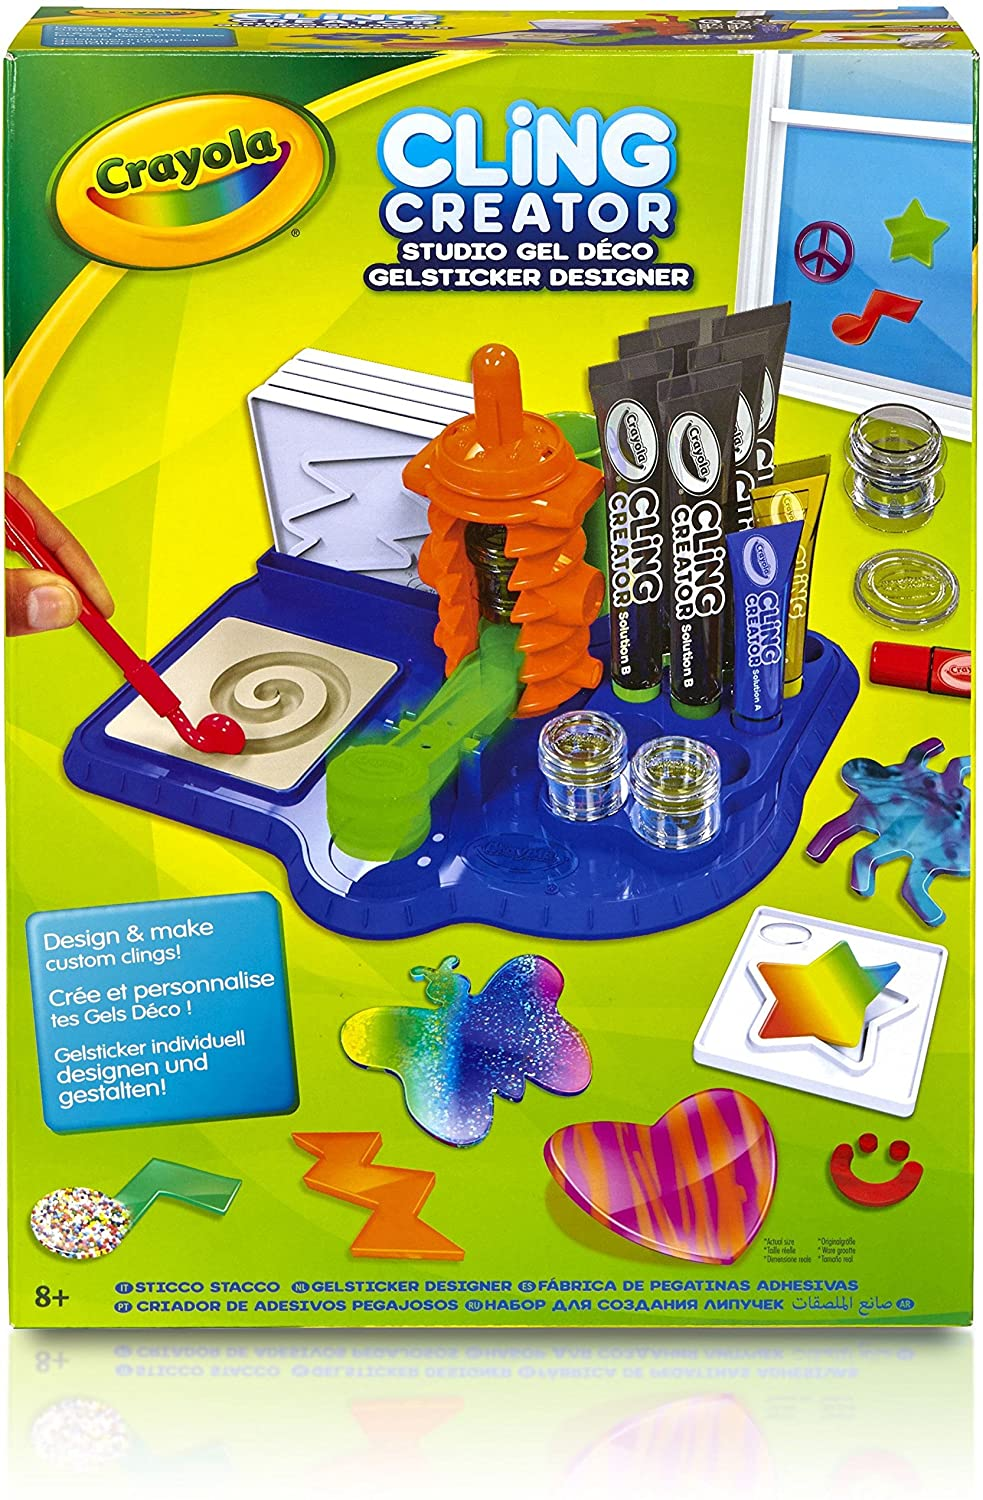 Crayola Cling Creator Activity Set